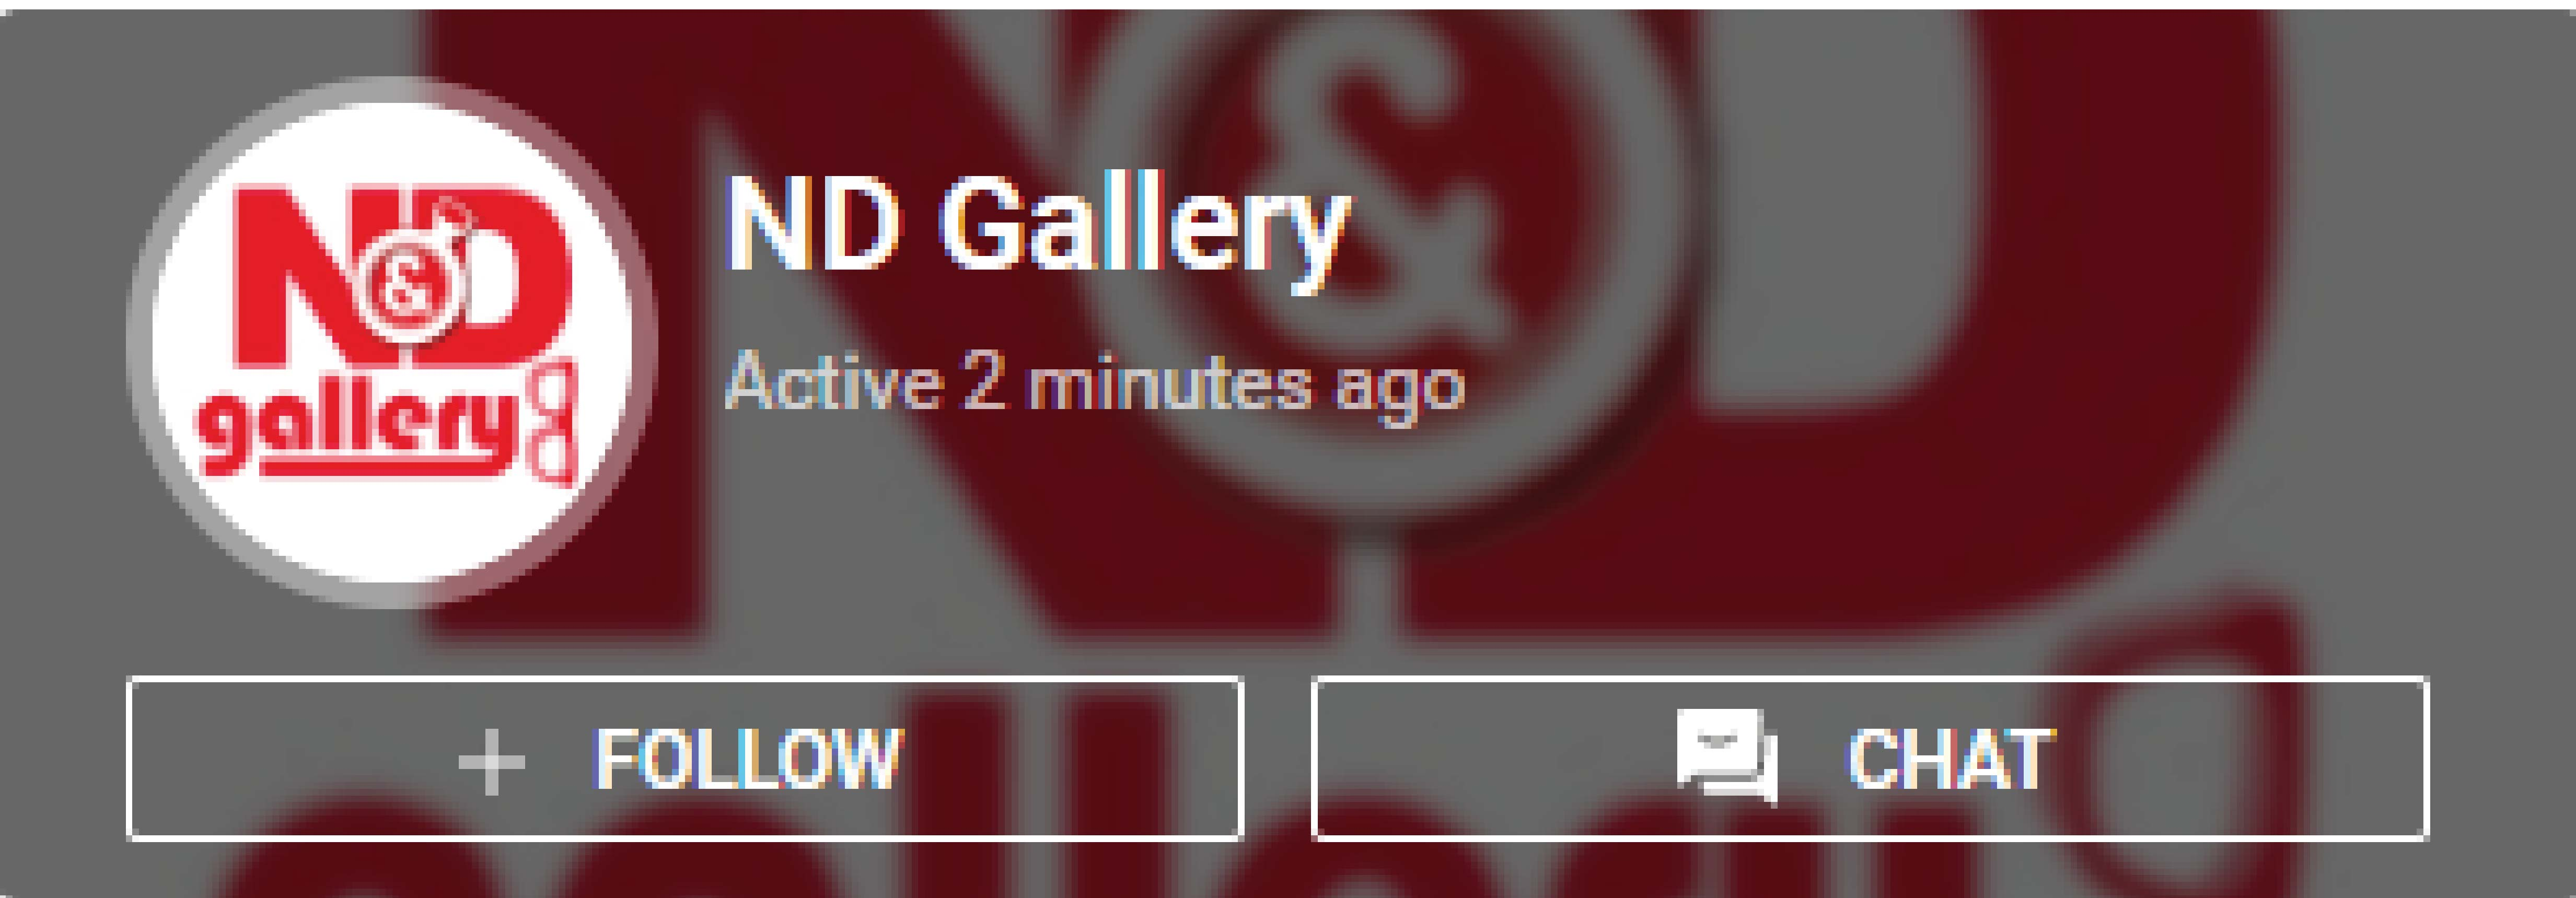 ND GALLERY-01